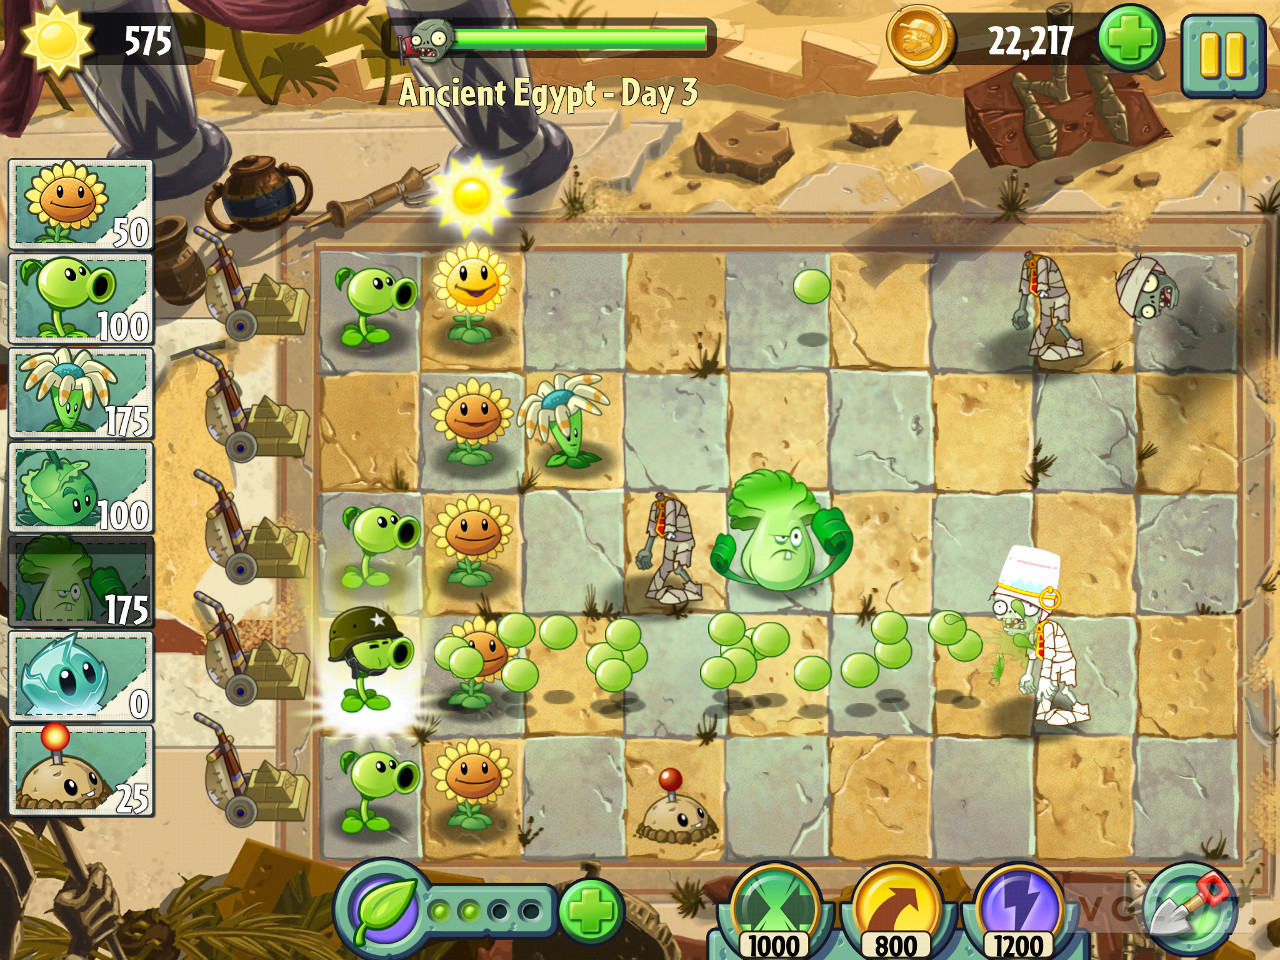 Plants vs zombies 2 it's about time dated is free to play